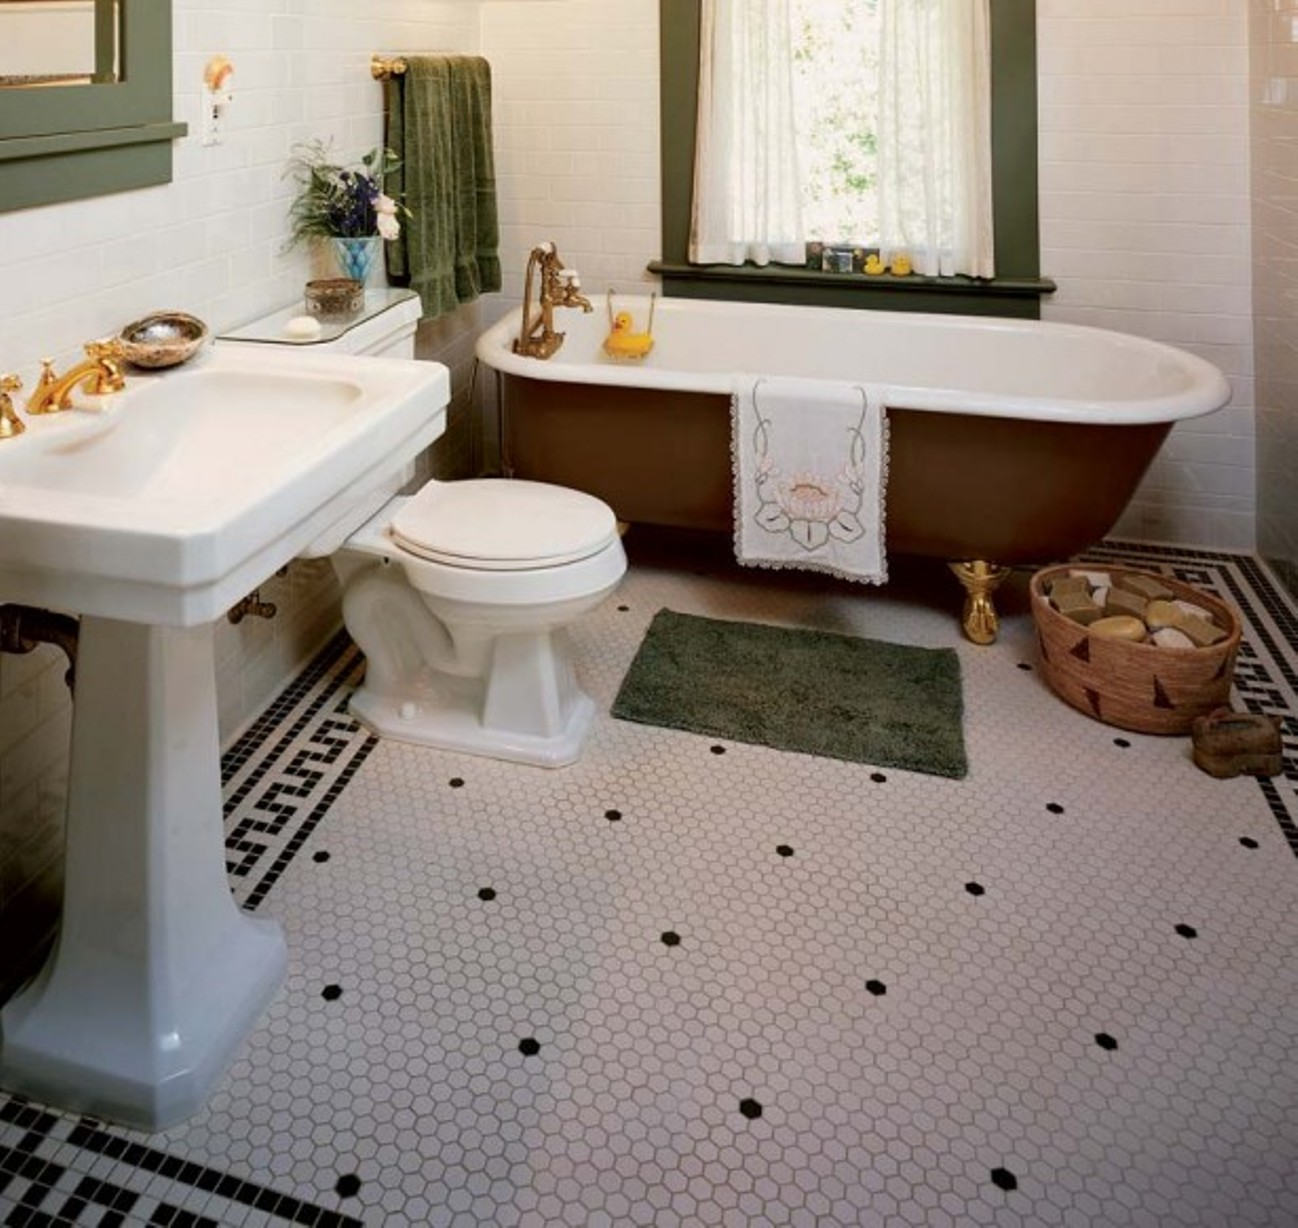 30 ideas on using hex tiles for bathroom floors Images of bathroom tile floors